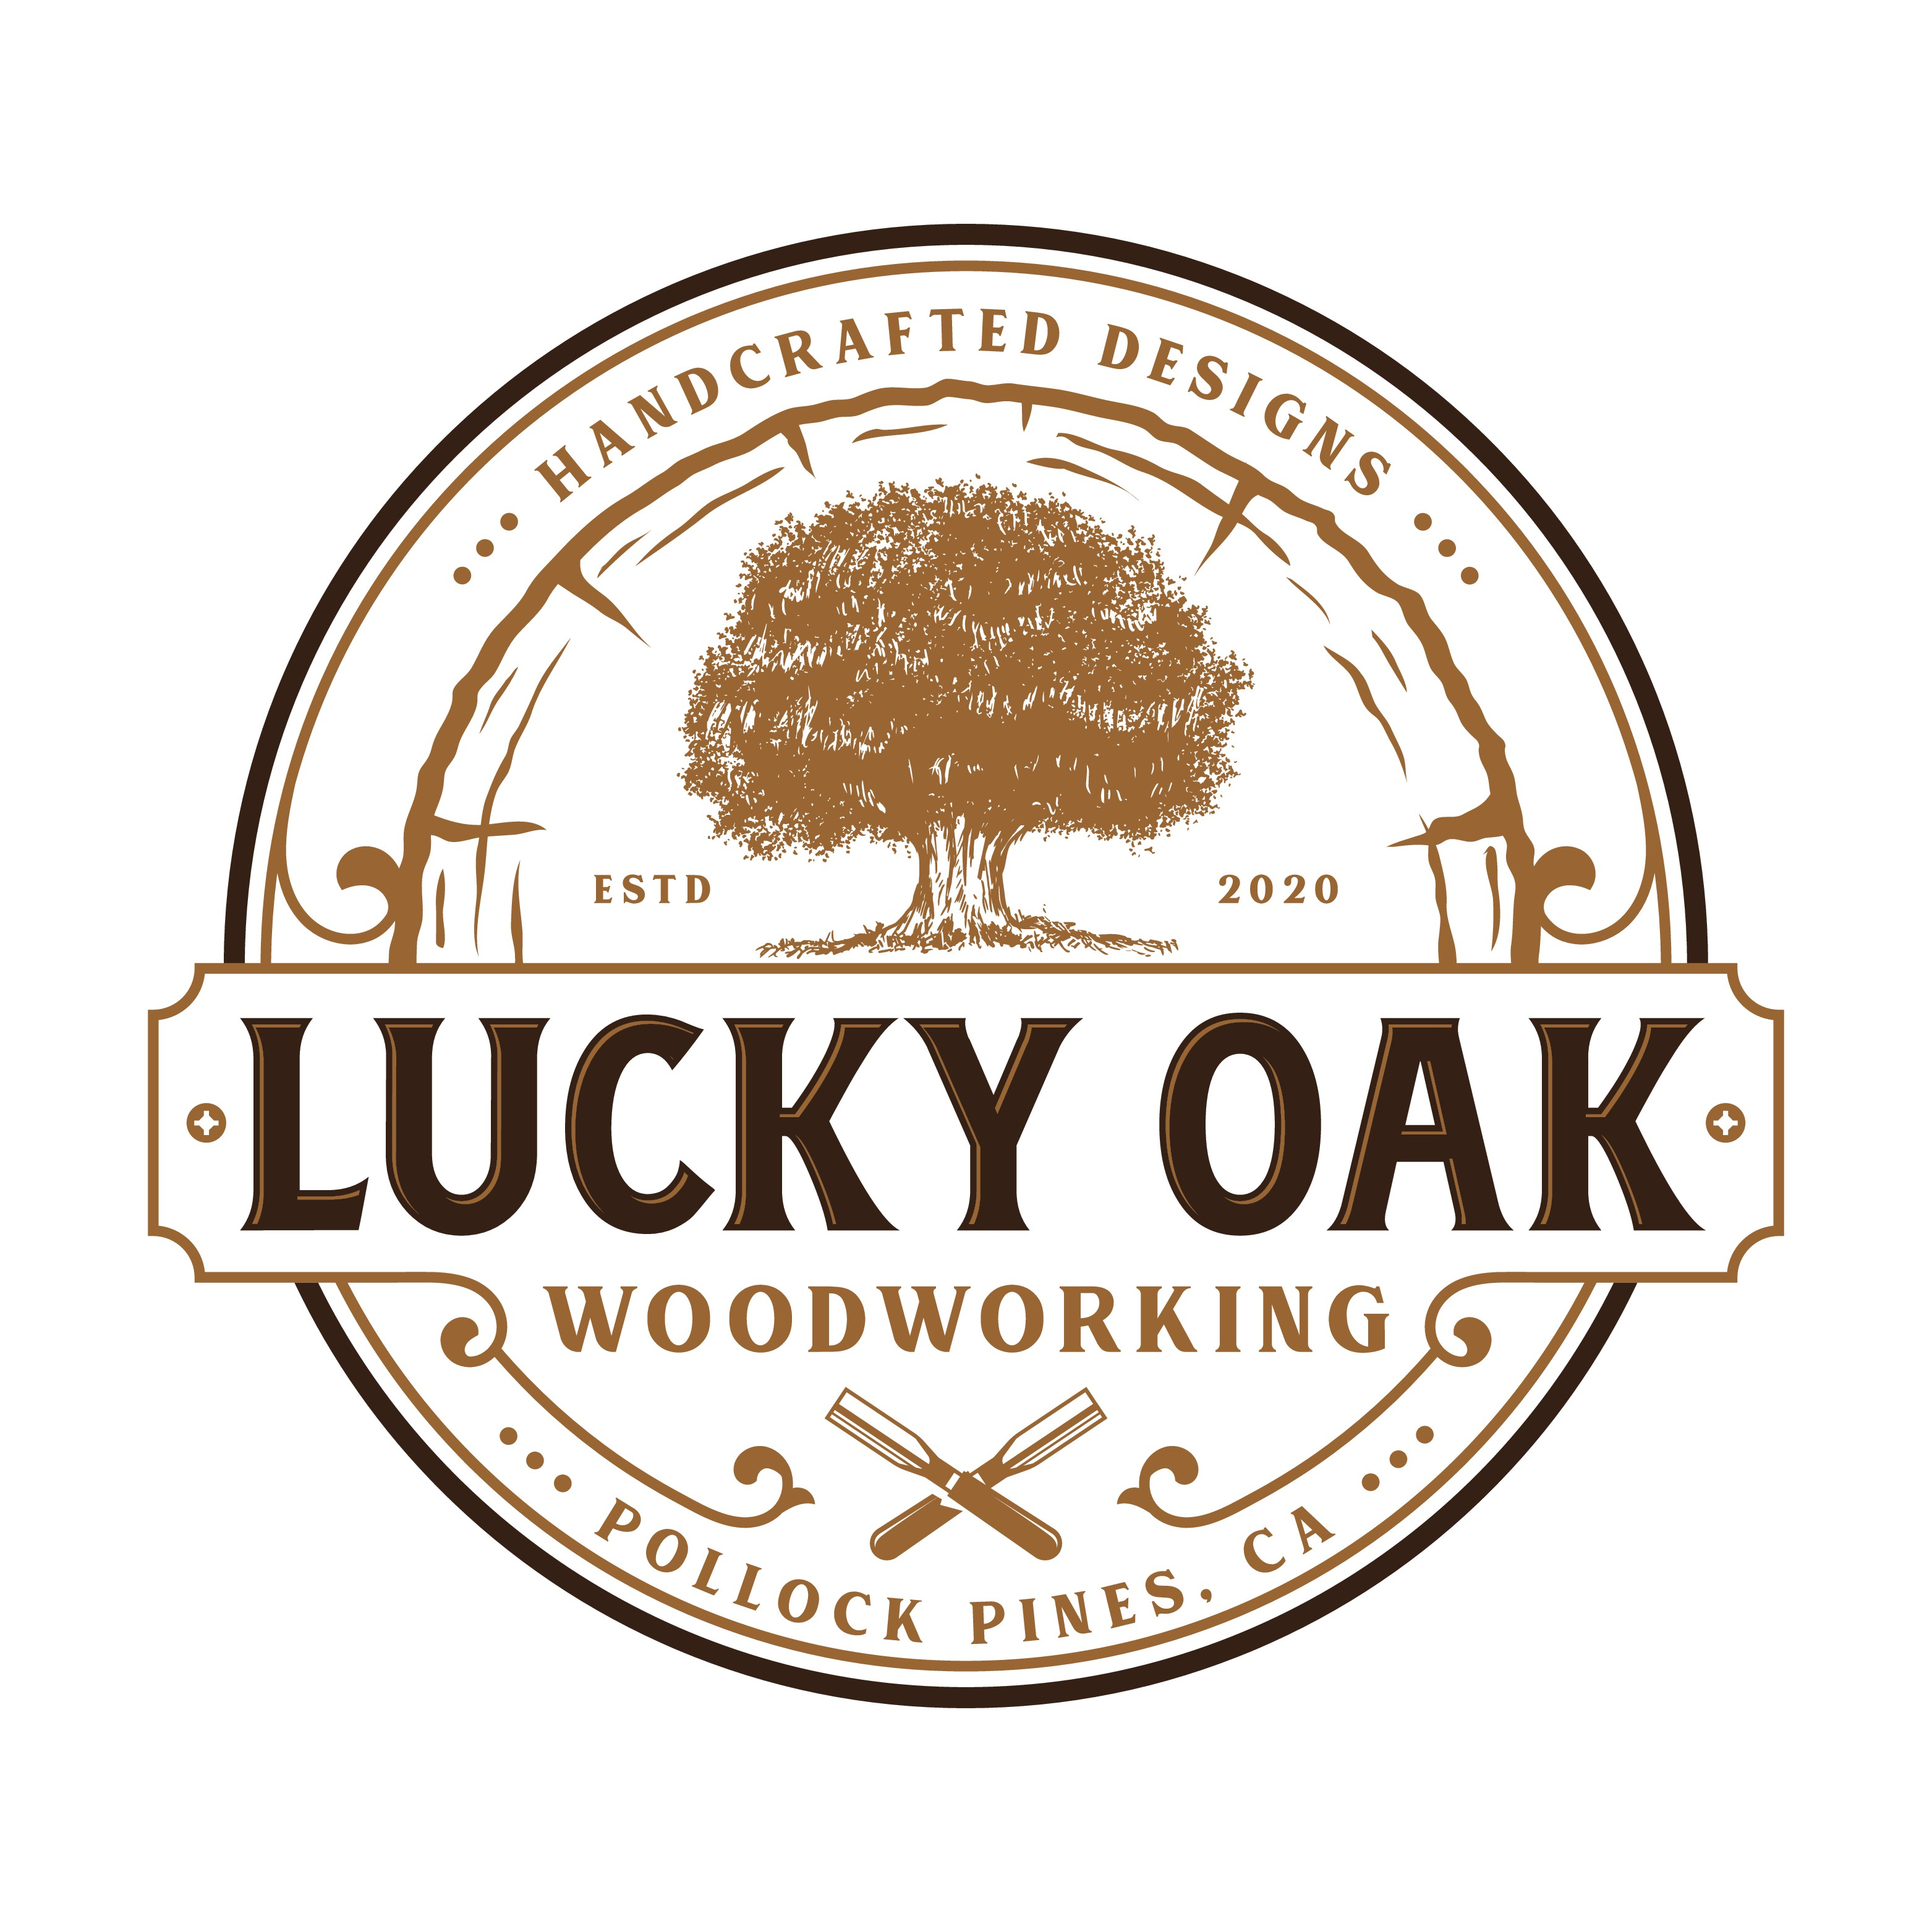 Timeless and sophisticated logo for a custom woodworking shop.